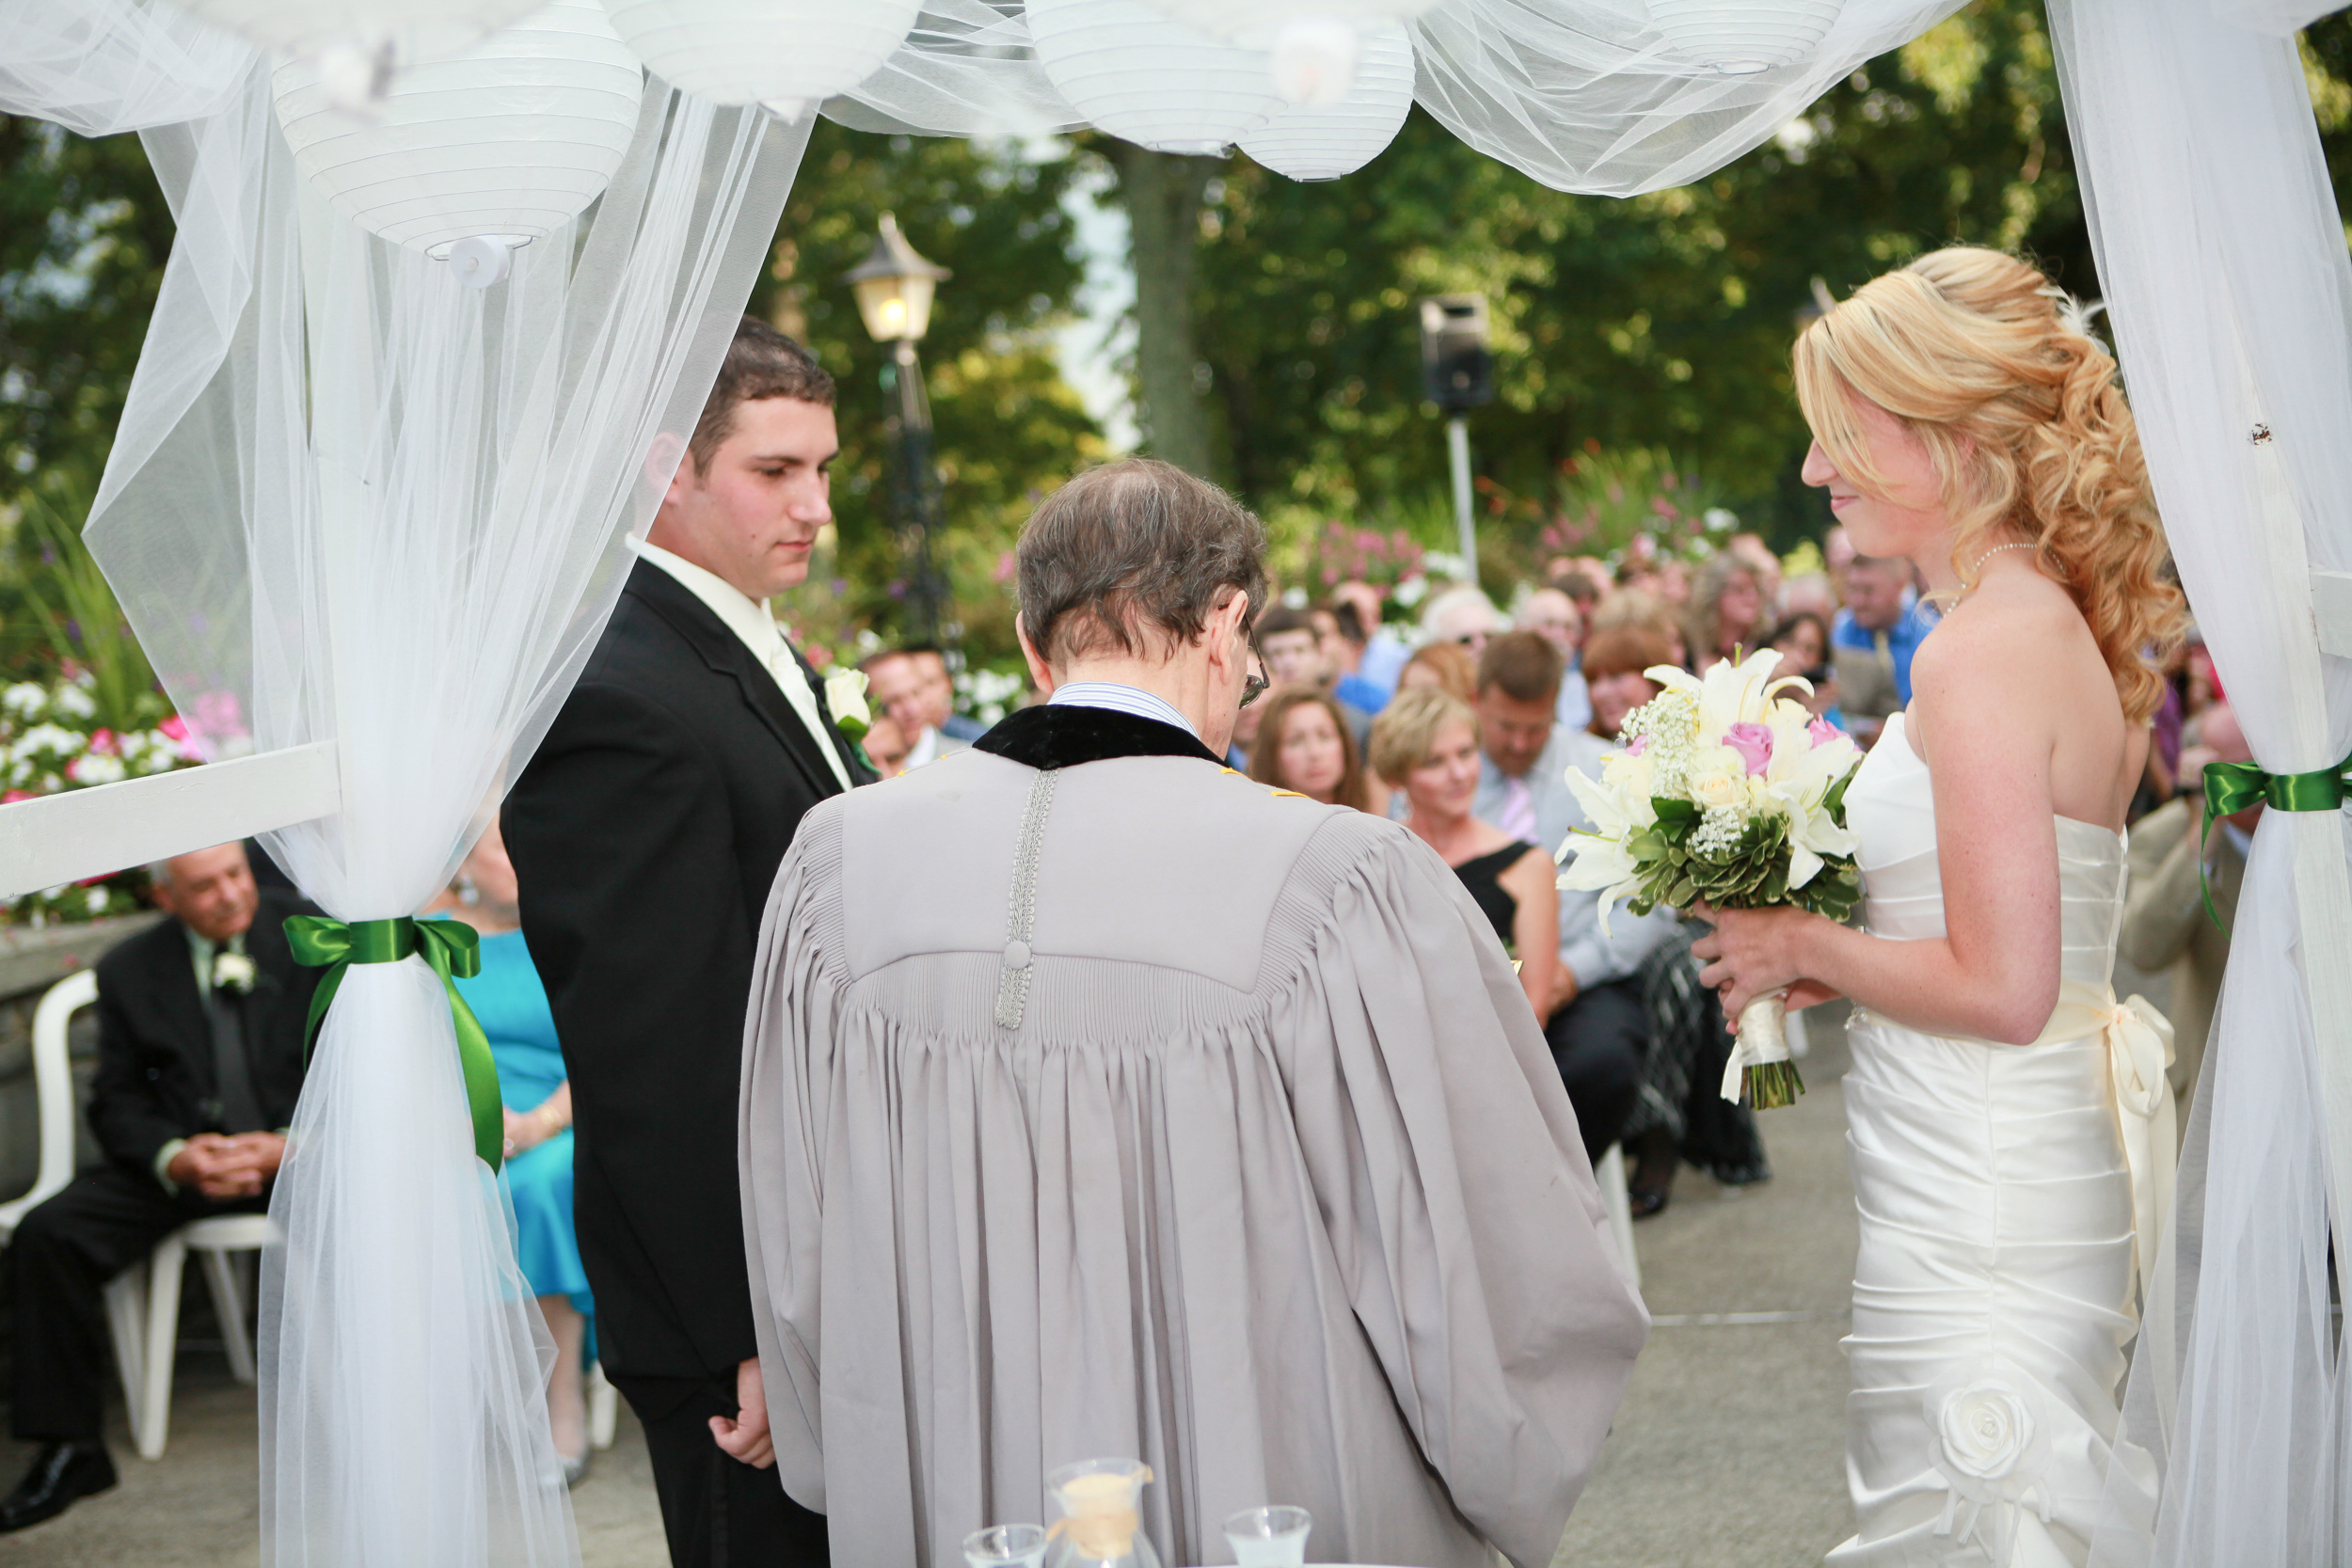 A wedding ceremony at the Albany county club